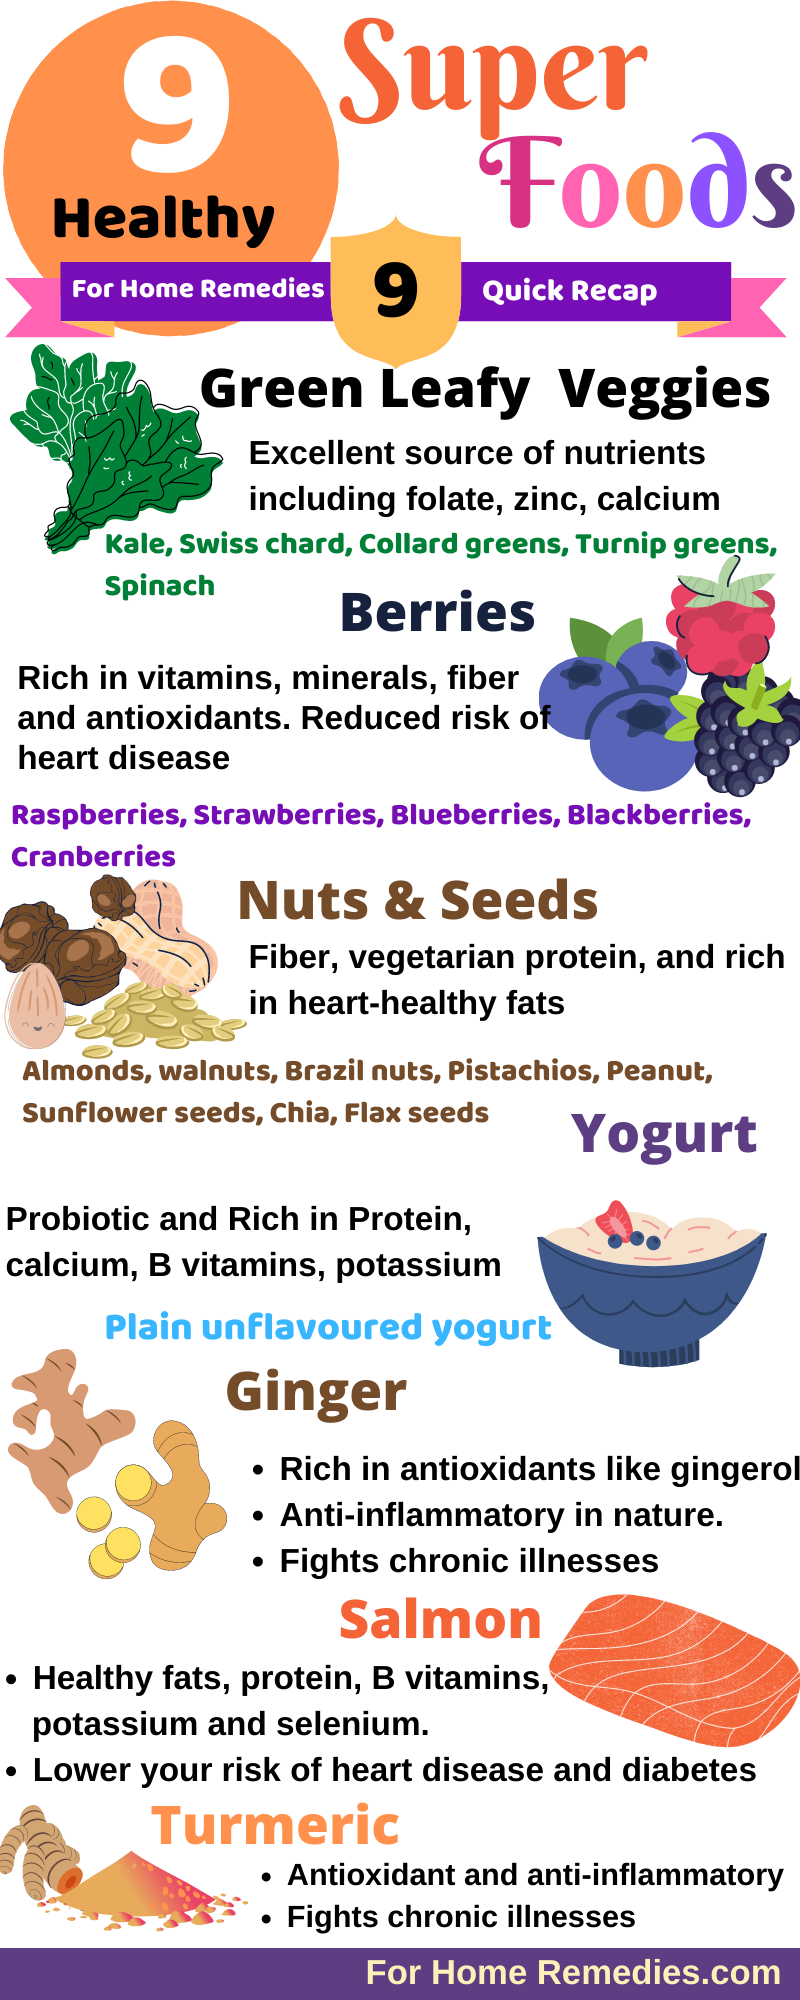 Super Foods for Healthy Life Energy and Stamina. Fights Chronic illness and Anti inflammatory